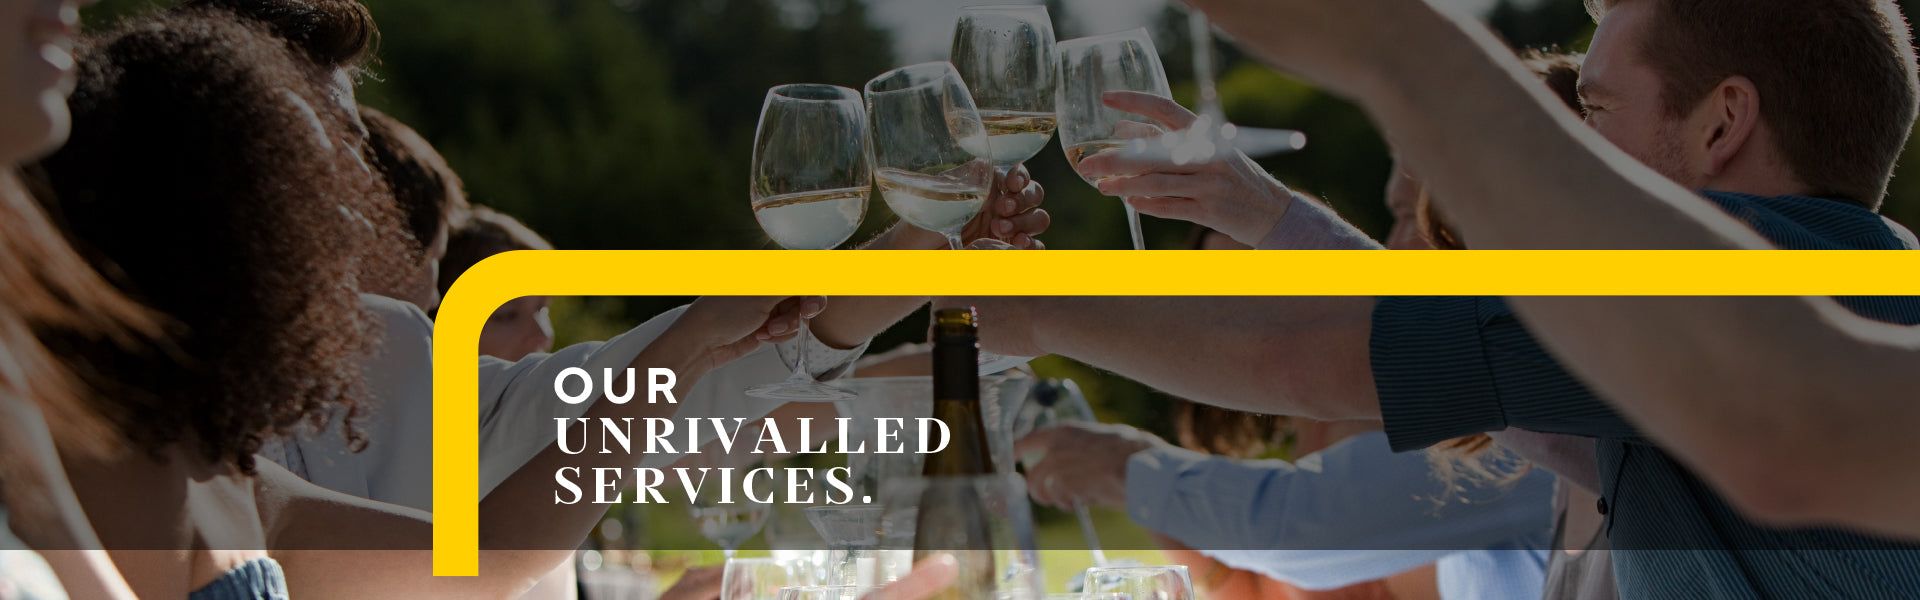 Shop Wine at Norman Goodfellows